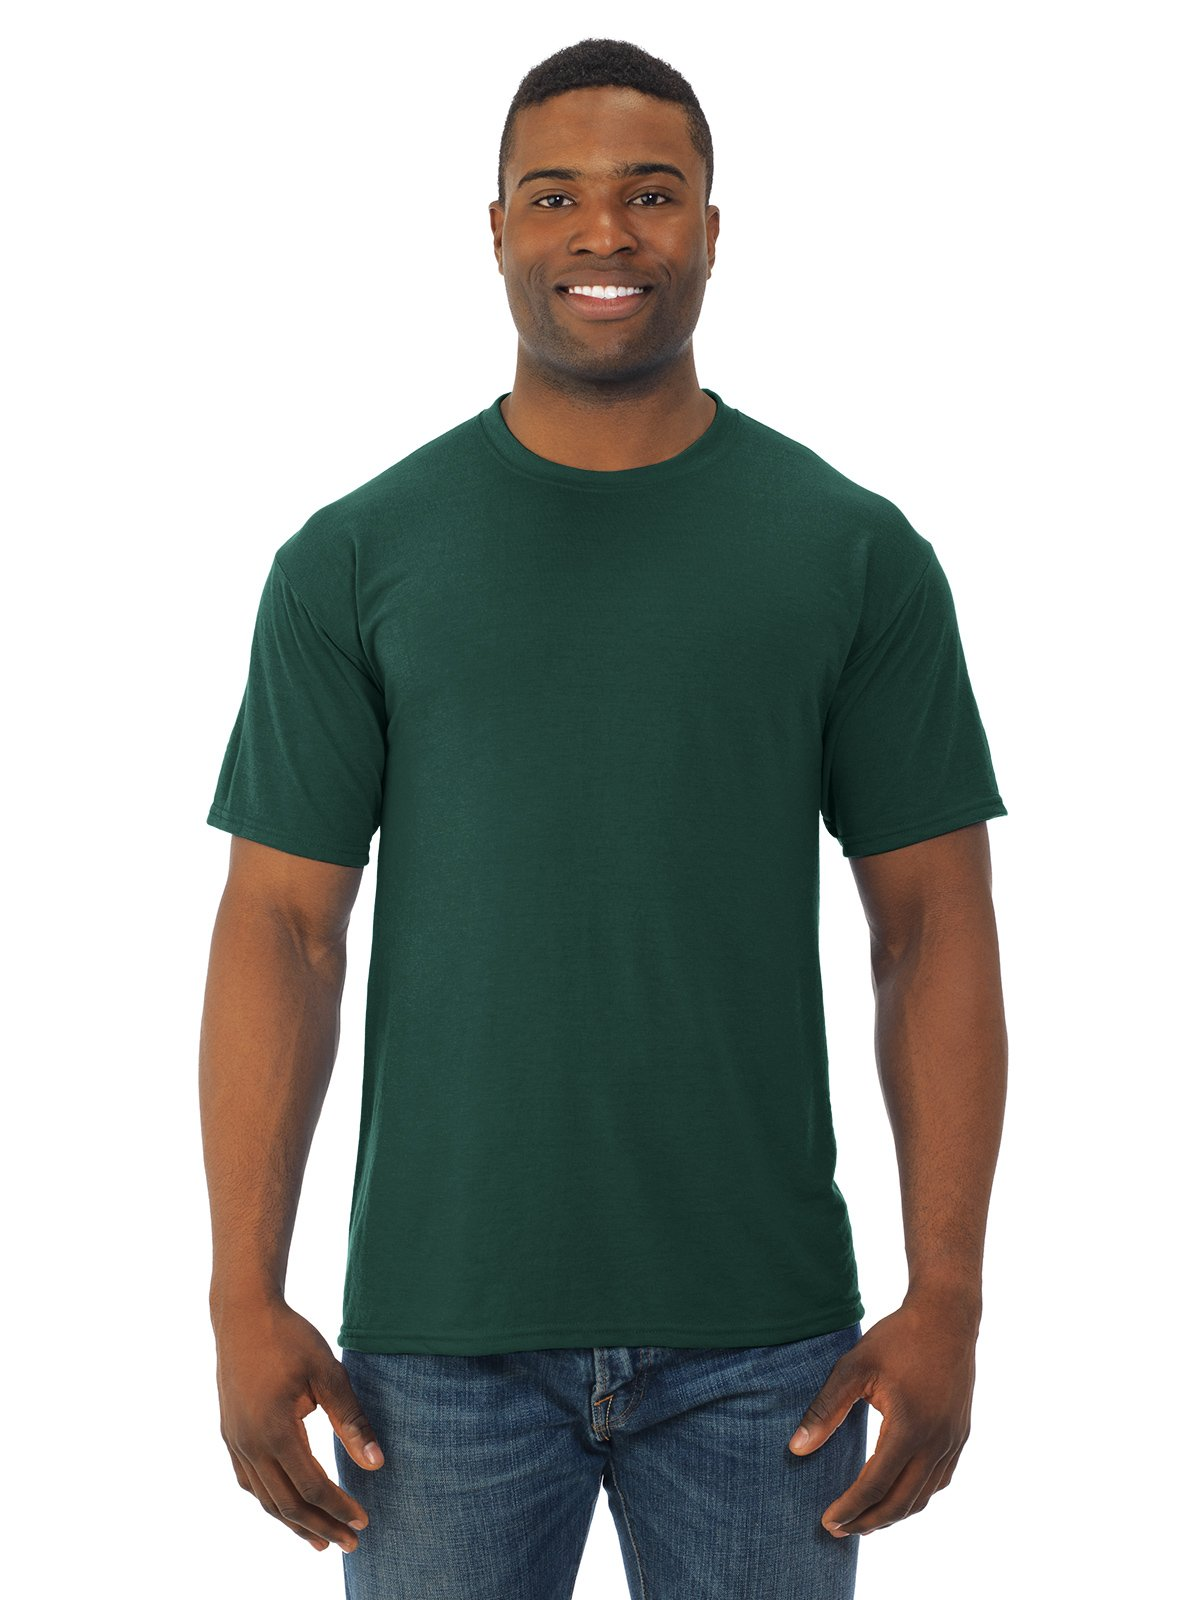 Men's polyester sport t-shirt. (Forest) (Small)